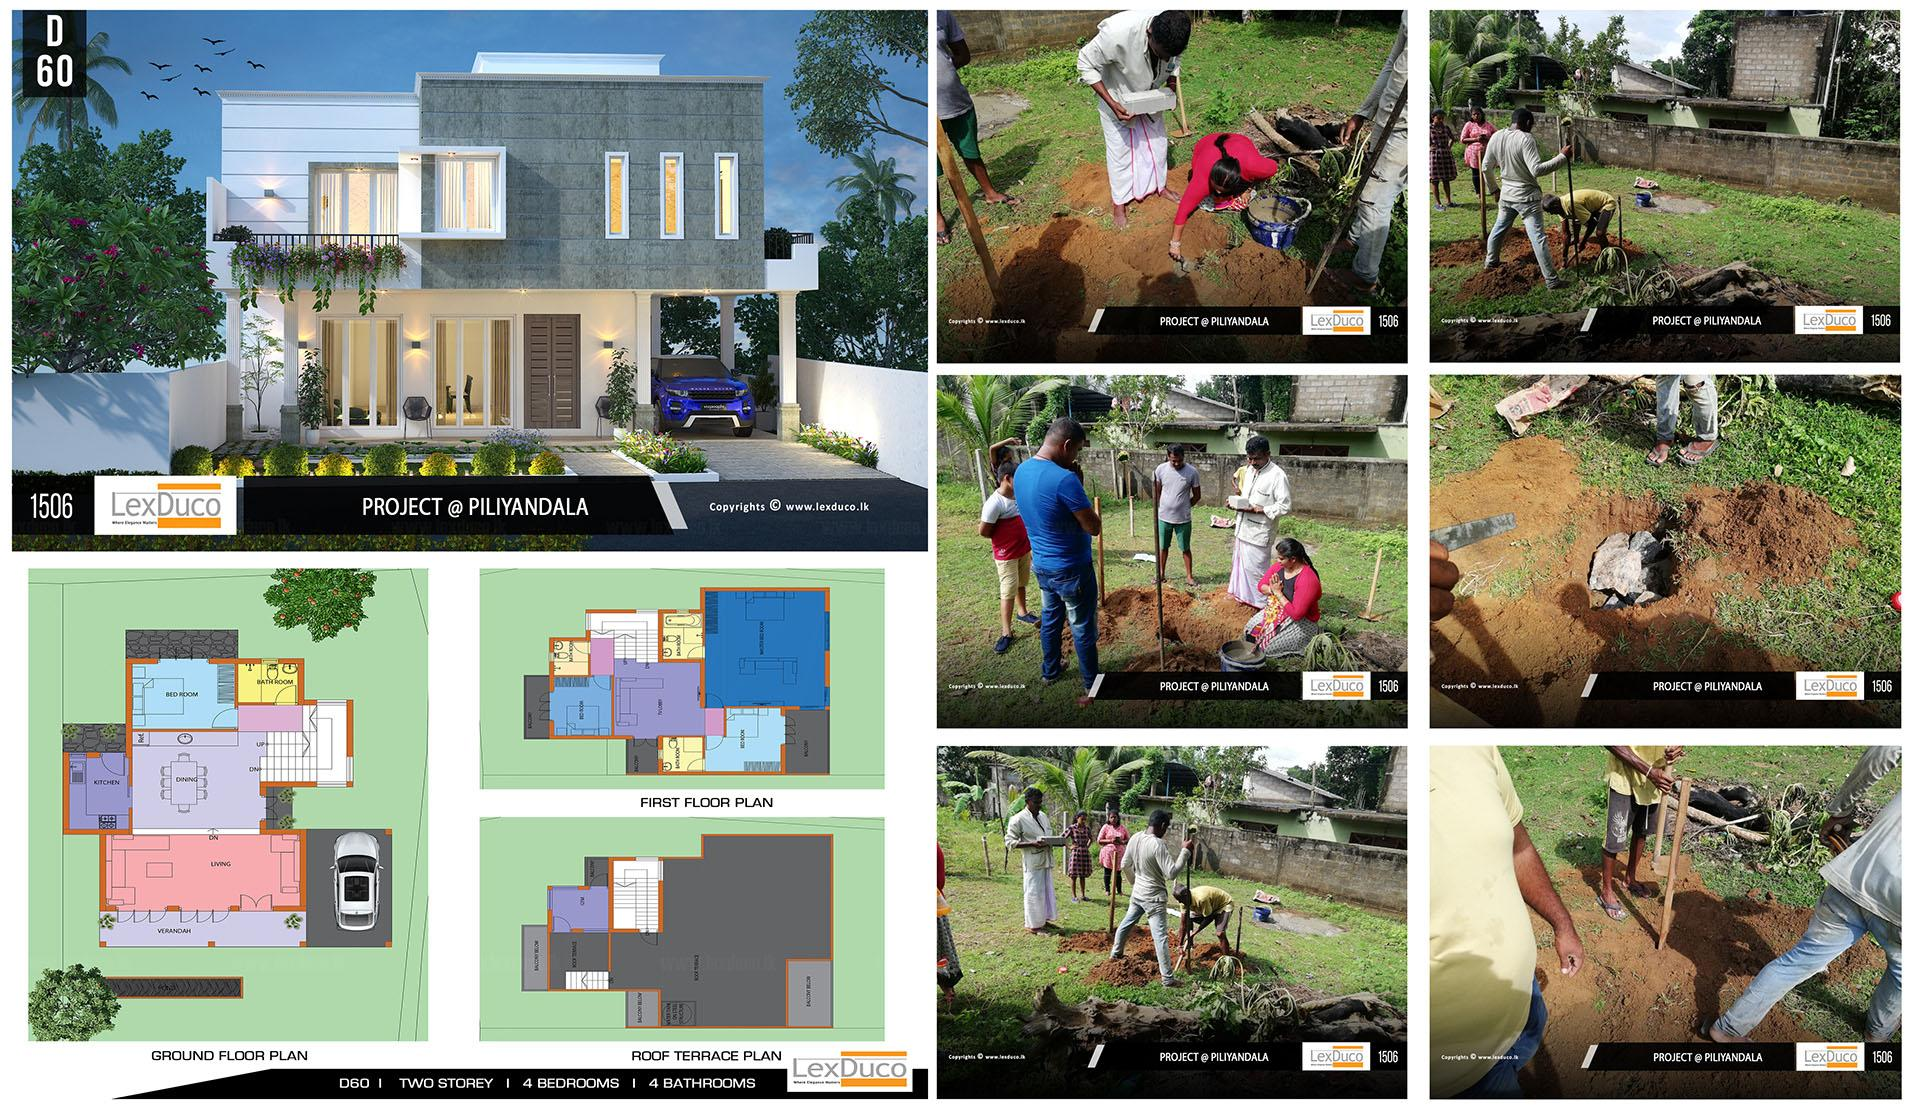 Residential Housing Project at Piliyandala | Lex Duco